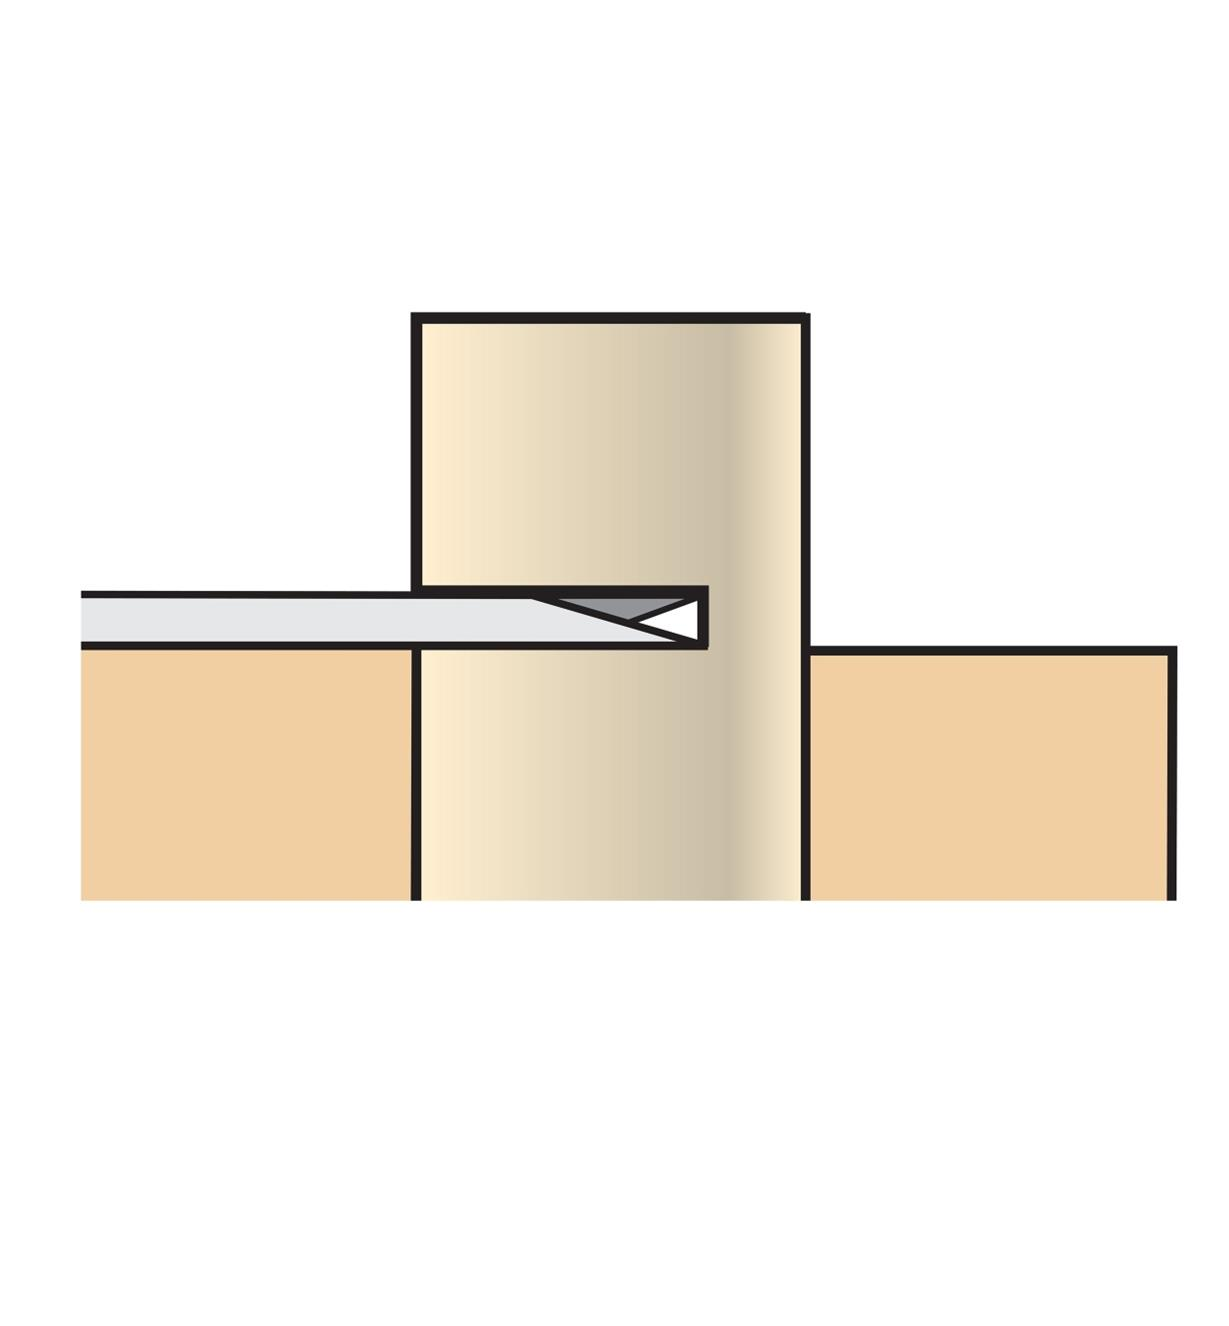 Illustration of blade cutting a plug flush to a surface